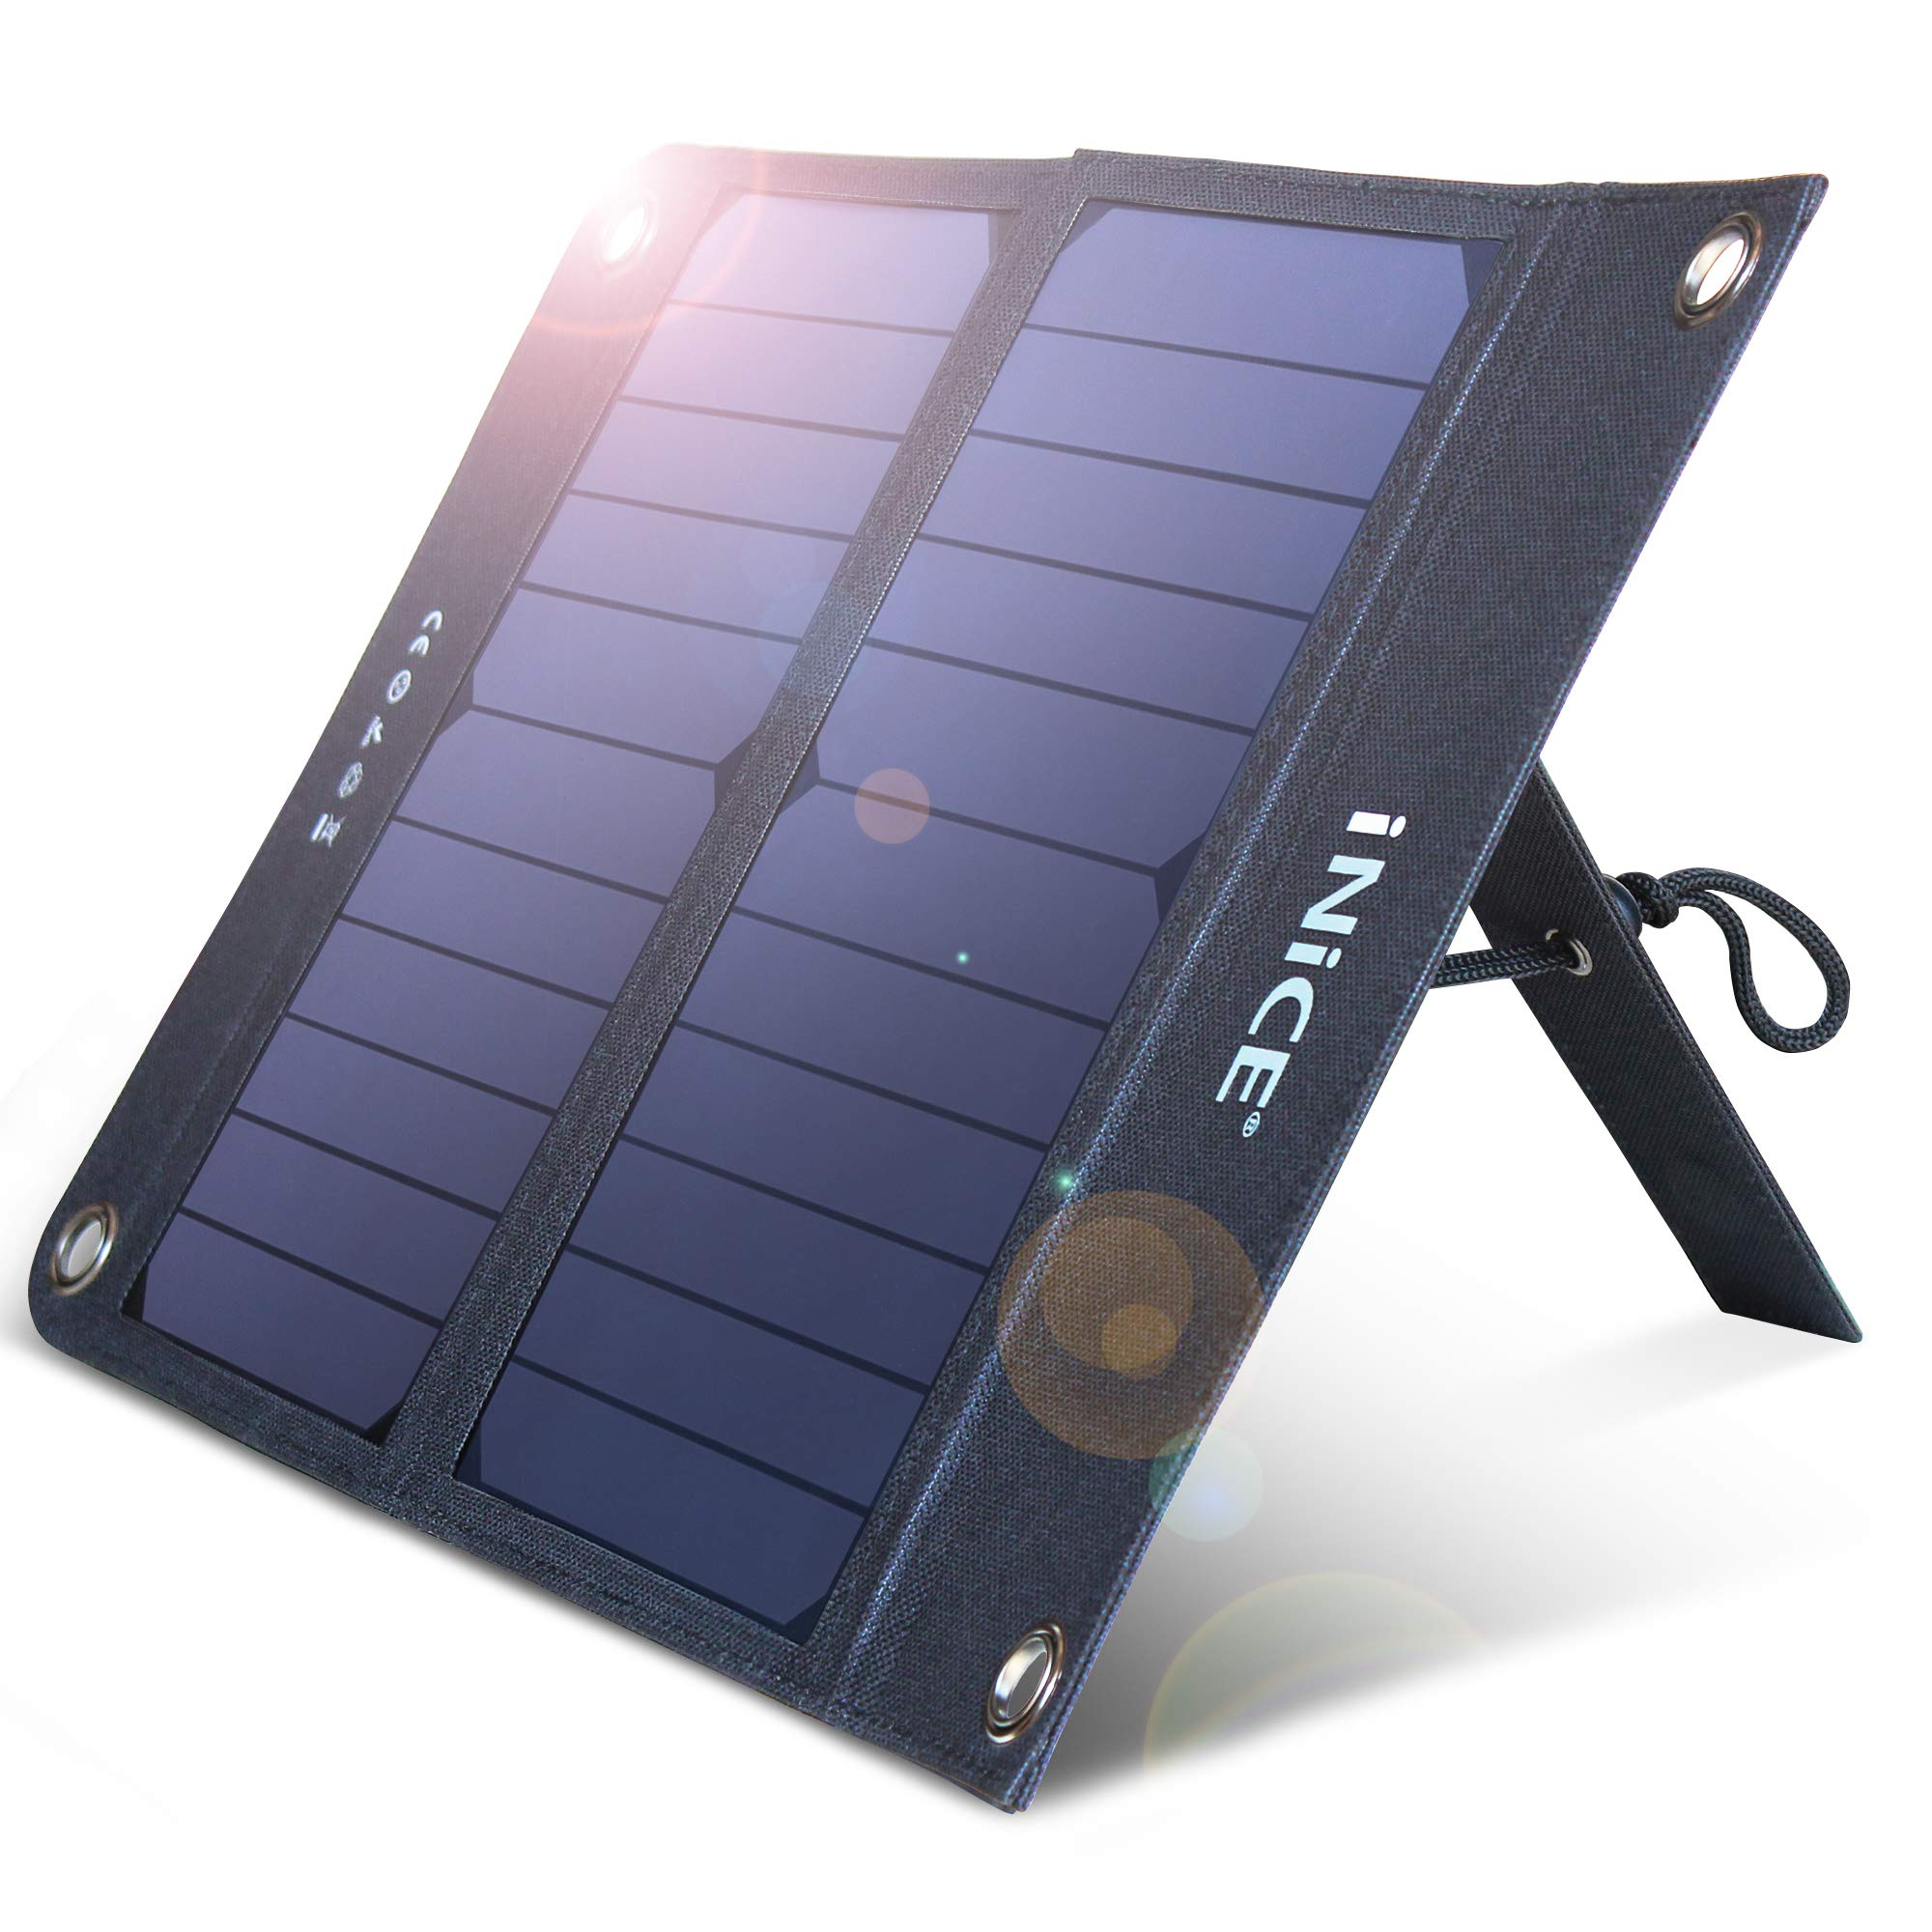 10000mAh Solar Charger Portable Solar Power Bank for Cell Phone with Dual USB 2.1A Outputs Waterproof External Battery Pack Chargers for iPhone Xs Max XR X 8 7 Plus, iPad, Galaxy S9 S8 Note 8